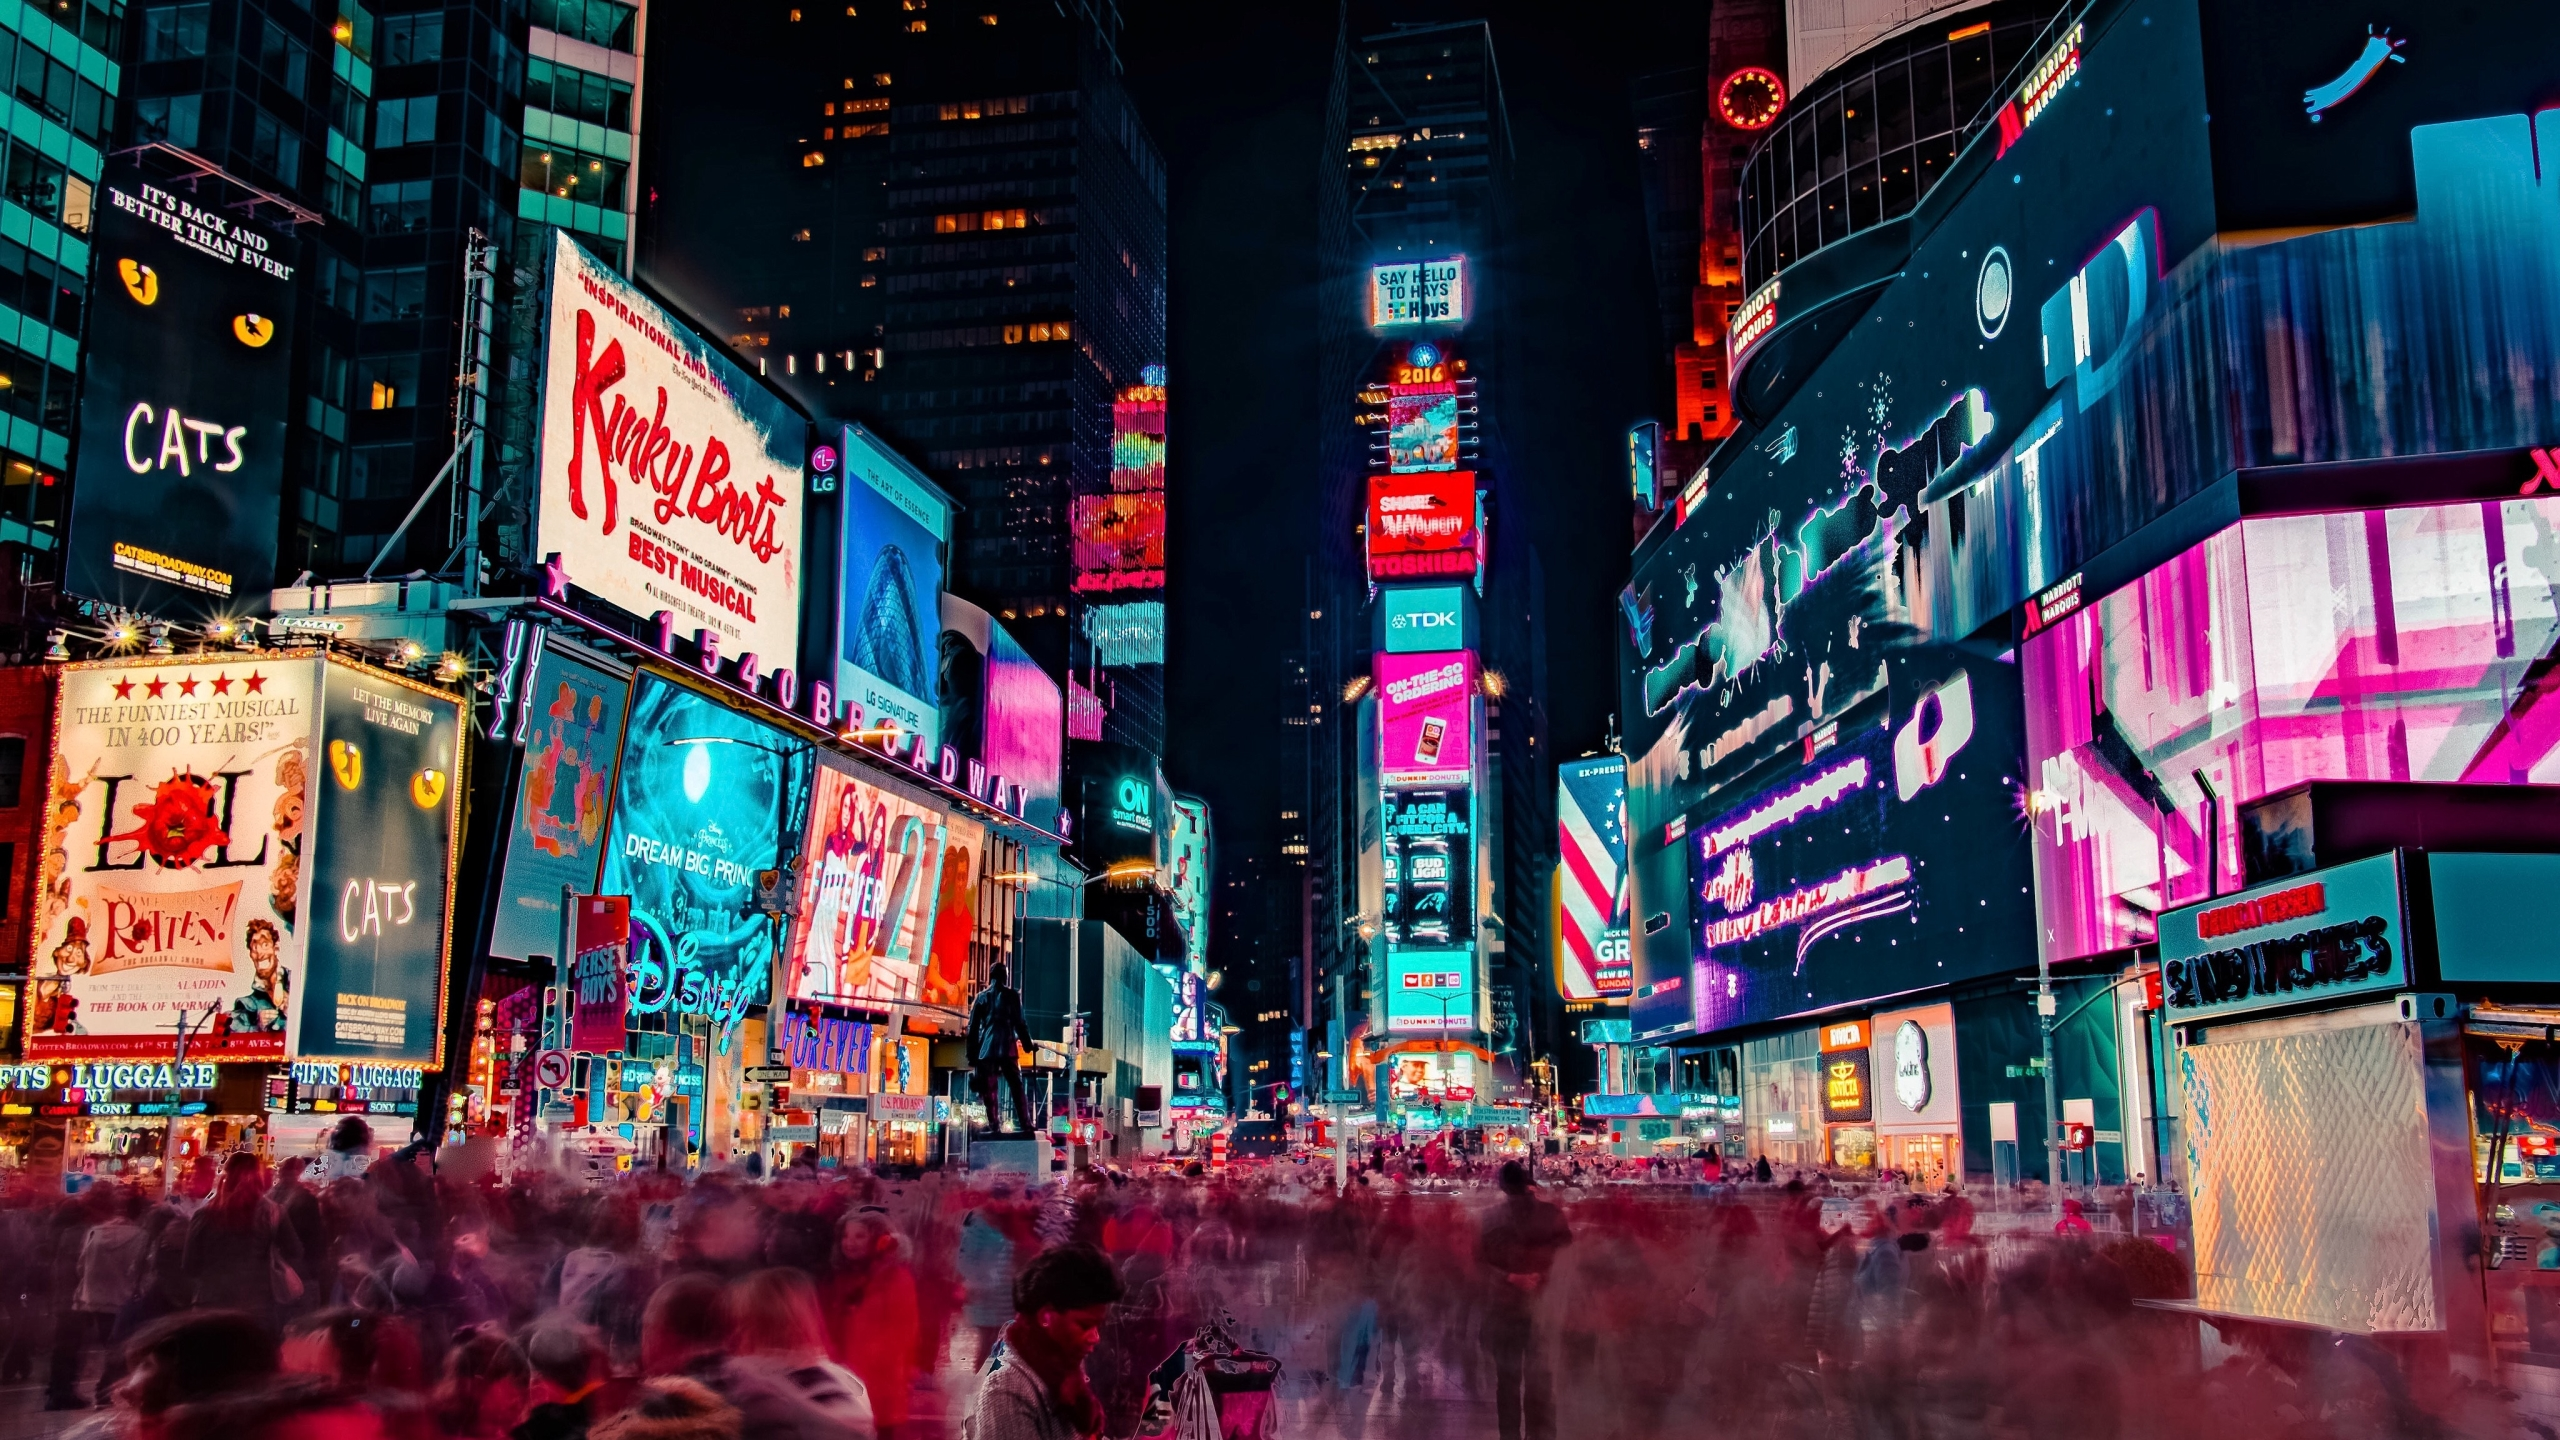 Night Crowd At Times Square Hd Wallpaper Background Image 2560x1440 Id 1068578 Wallpaper Abyss